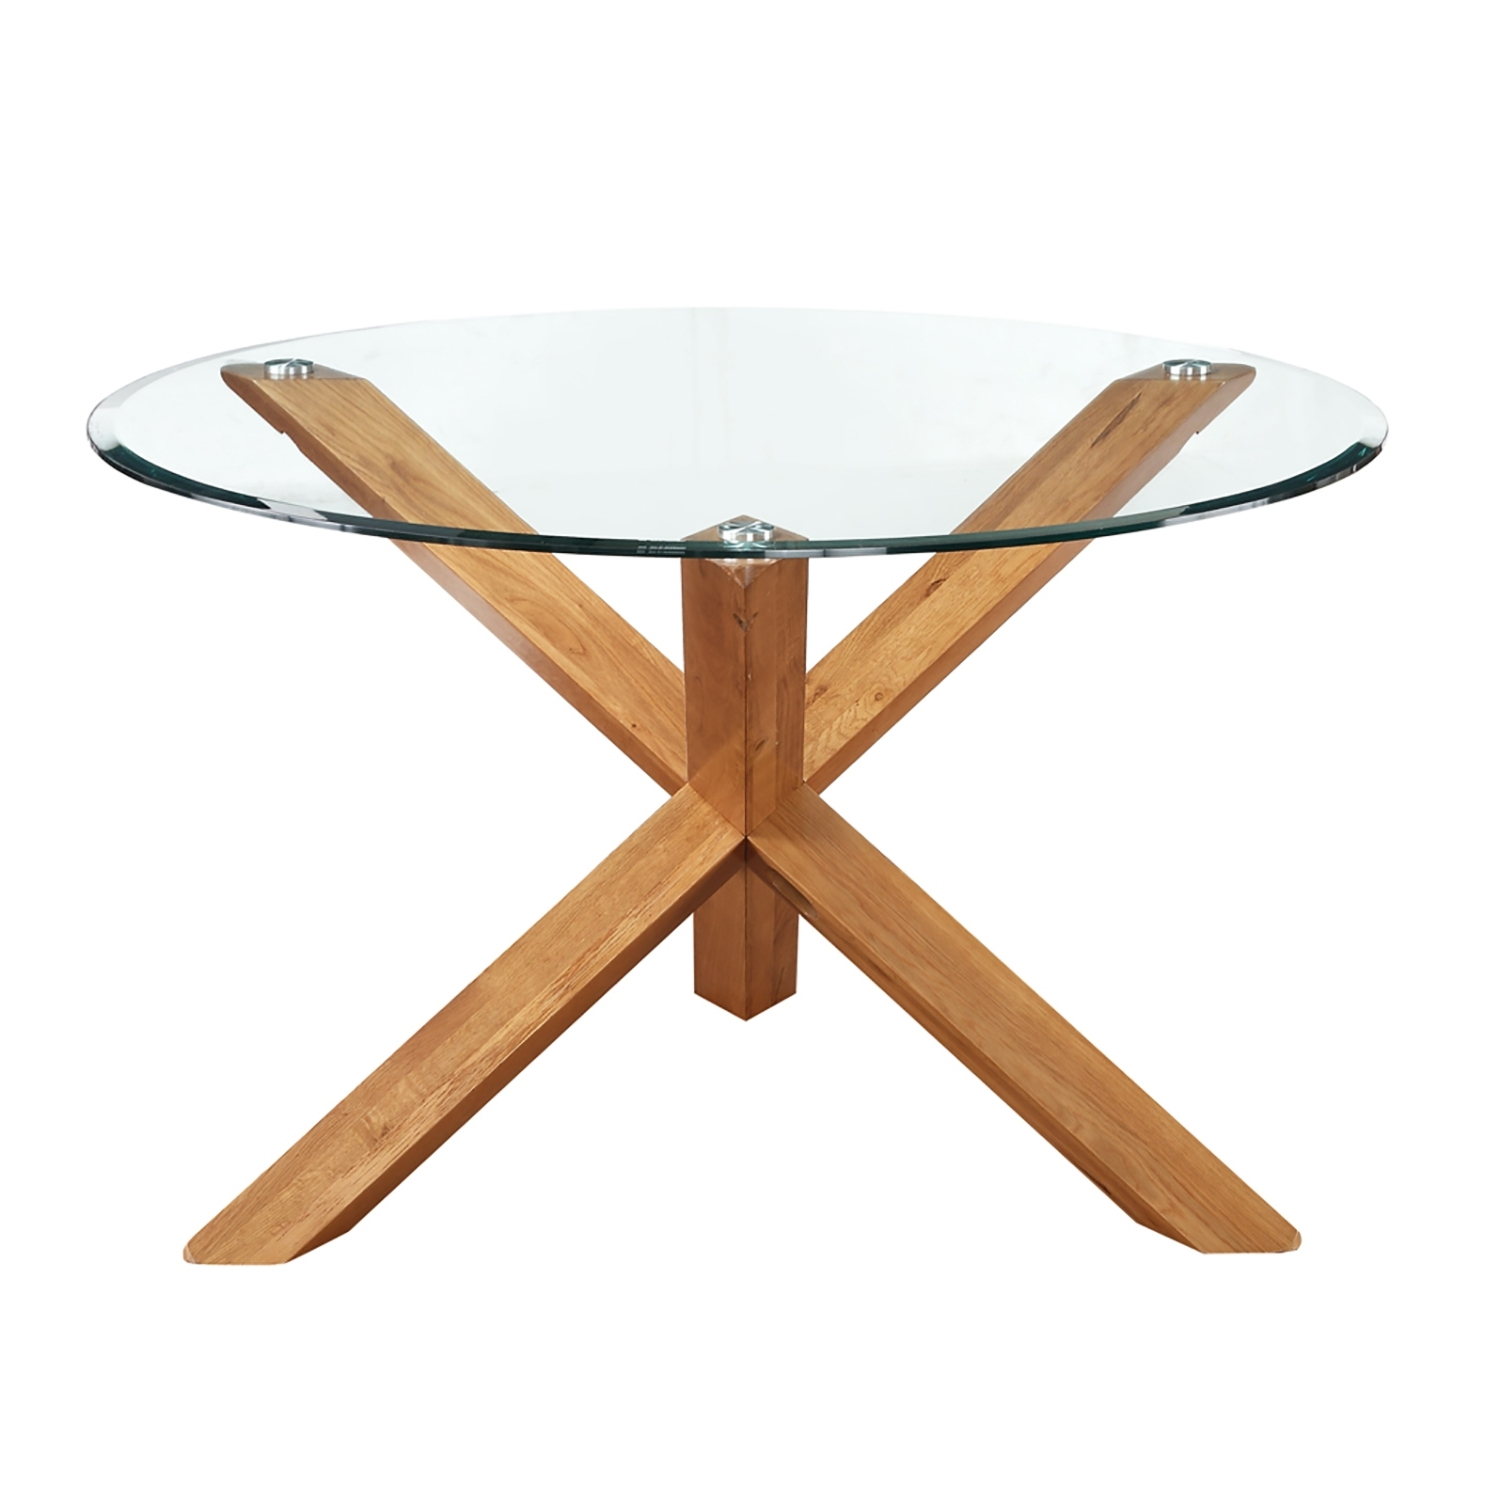 Oak And Glass Dining Tables Intended For Most Recent Miso Solid Oak And Glass Dining Table (View 17 of 25)